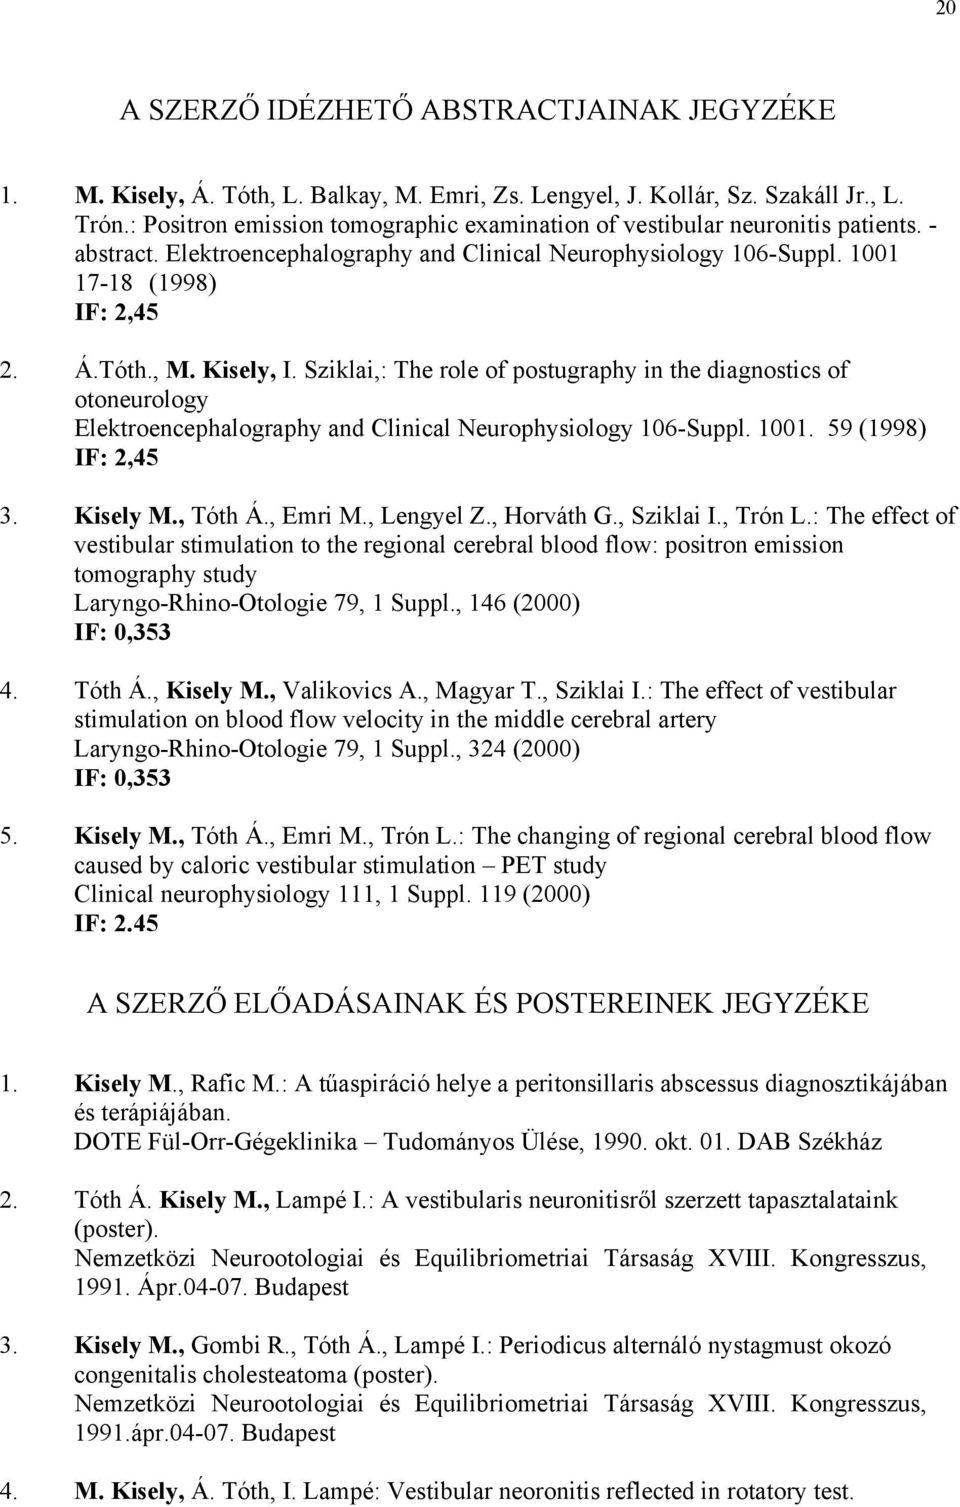 Kisely, I. Sziklai,: The role of postugraphy in the diagnostics of otoneurology Elektroencephalography and Clinical Neurophysiology 106-Suppl. 1001. 59 (1998) IF: 2,45 3. Kisely M., Tóth Á., Emri M.